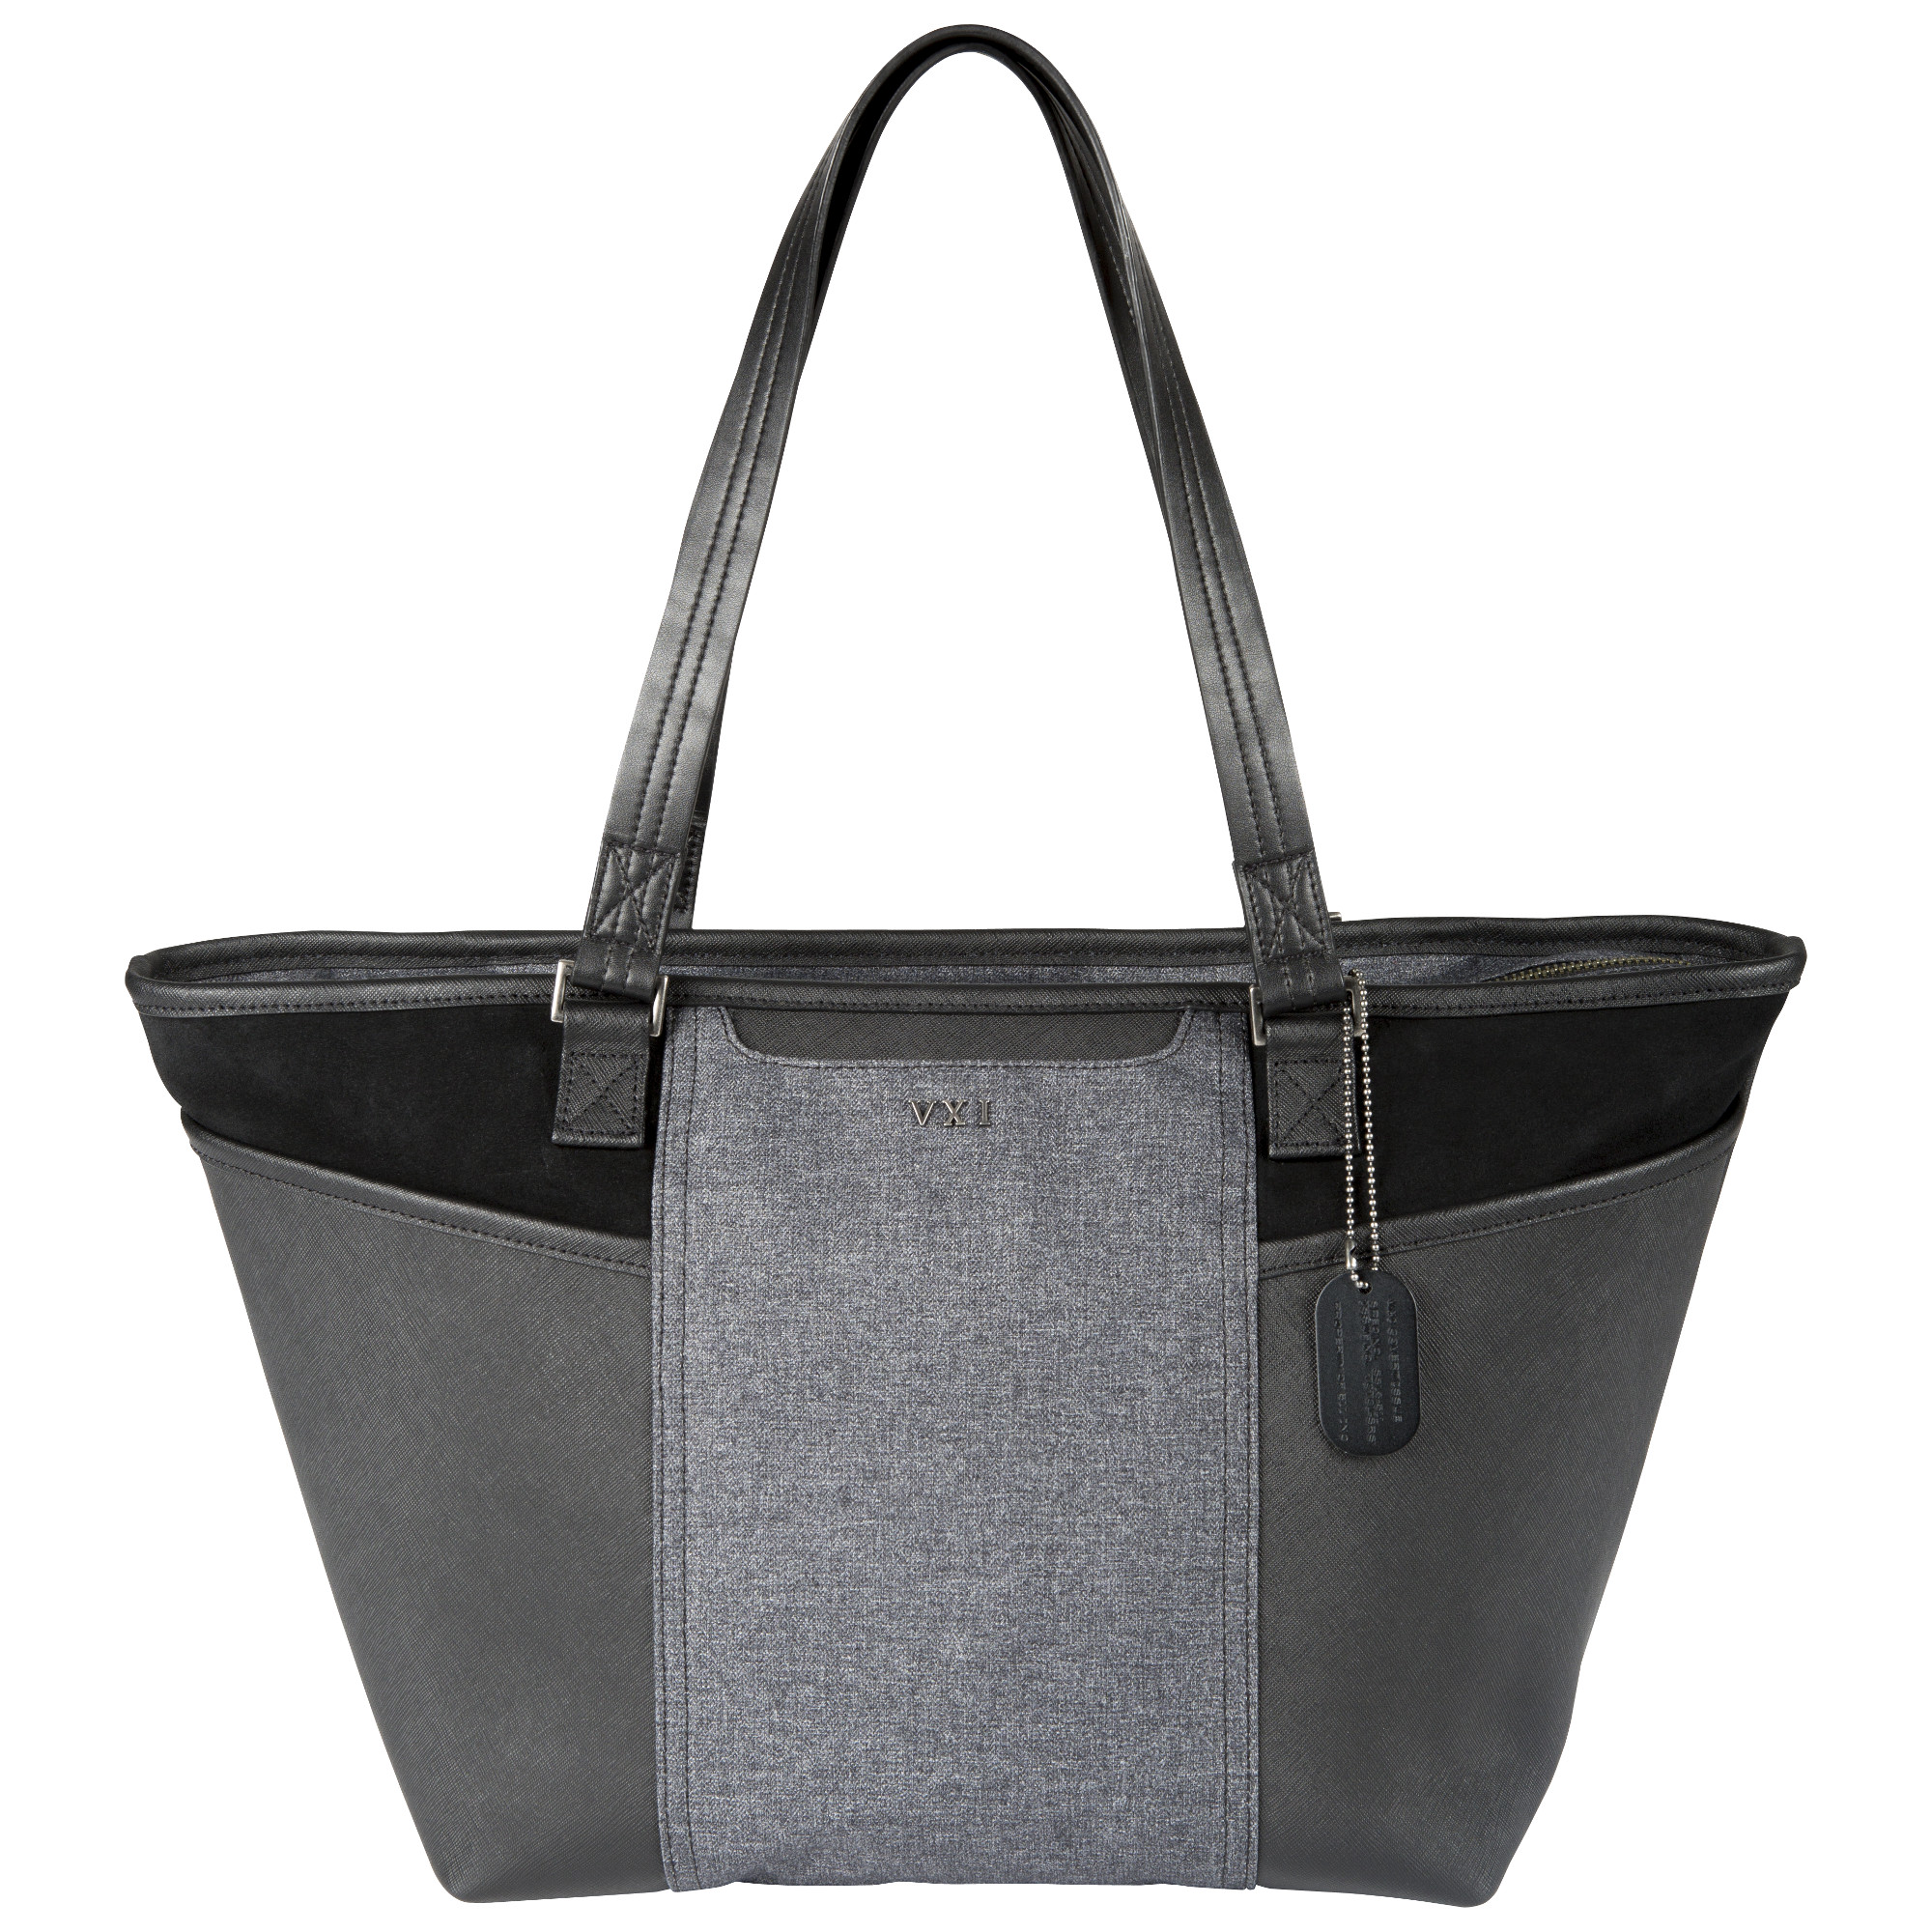 5.11 Tactical Women's Leather Lucy Tote (Black) thumbnail